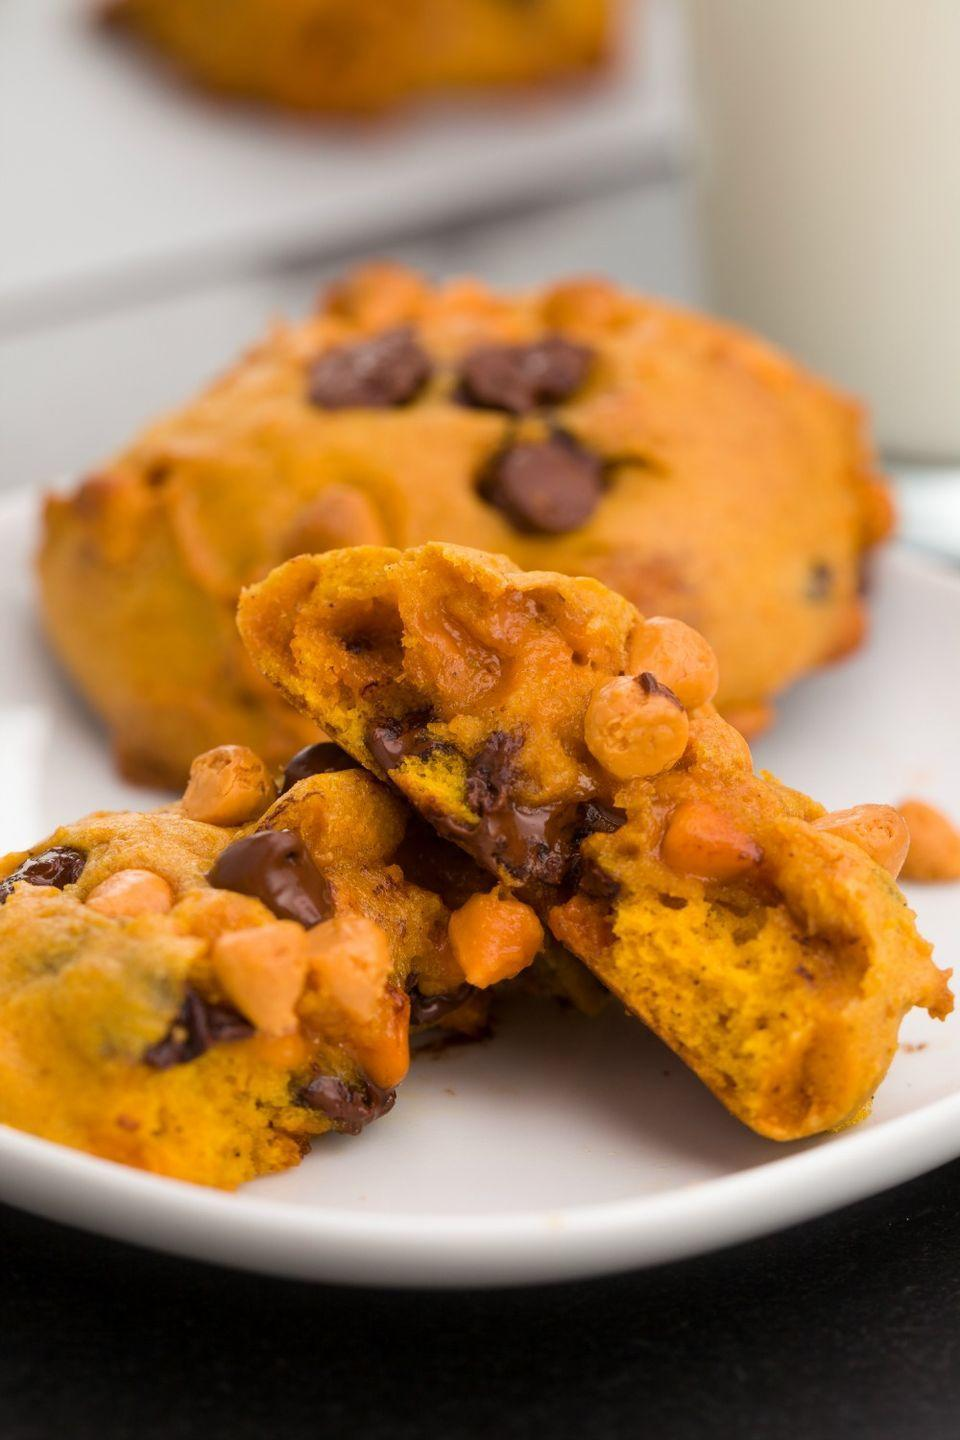 """<p>Because pumpkin loves chocolate—but it loves butterscotch even more.</p><p>Get the recipe from <a href=""""https://www.delish.com/cooking/recipes/a44396/pumpkin-chocolate-butterscotch-chip-cookies/"""" rel=""""nofollow noopener"""" target=""""_blank"""" data-ylk=""""slk:Delish"""" class=""""link rapid-noclick-resp"""">Delish</a>.</p>"""